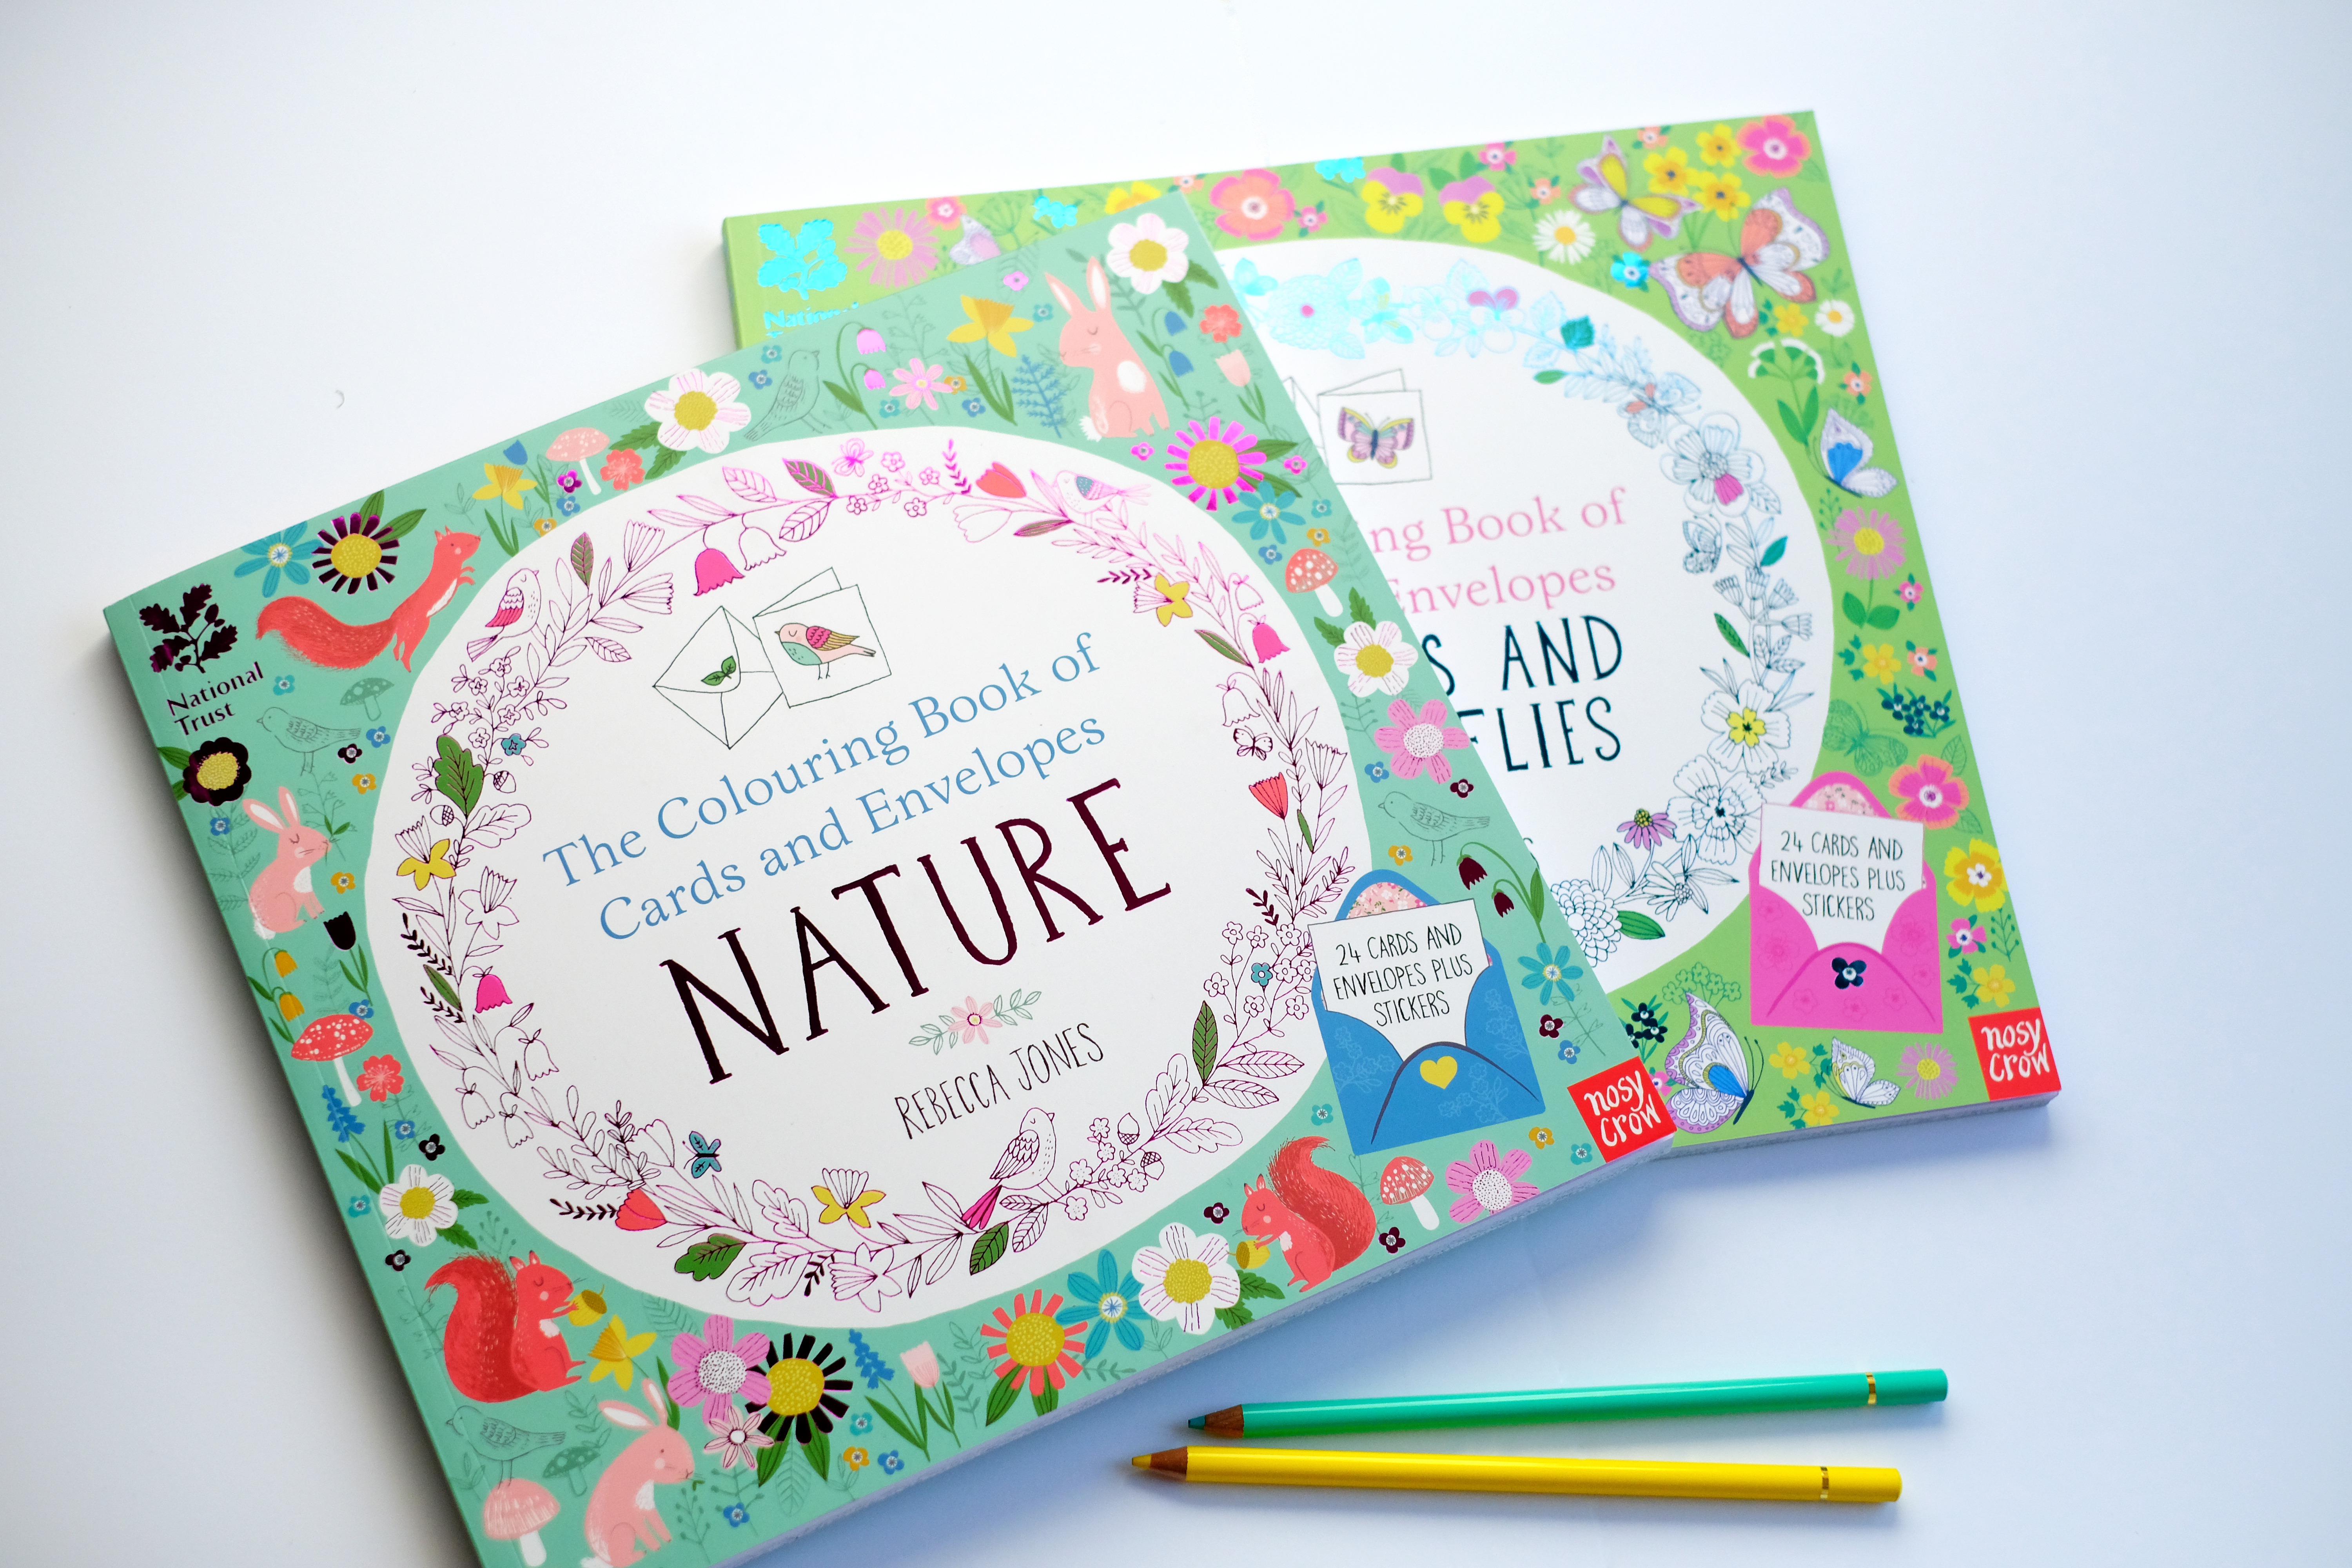 Colouring Books For The National Trust